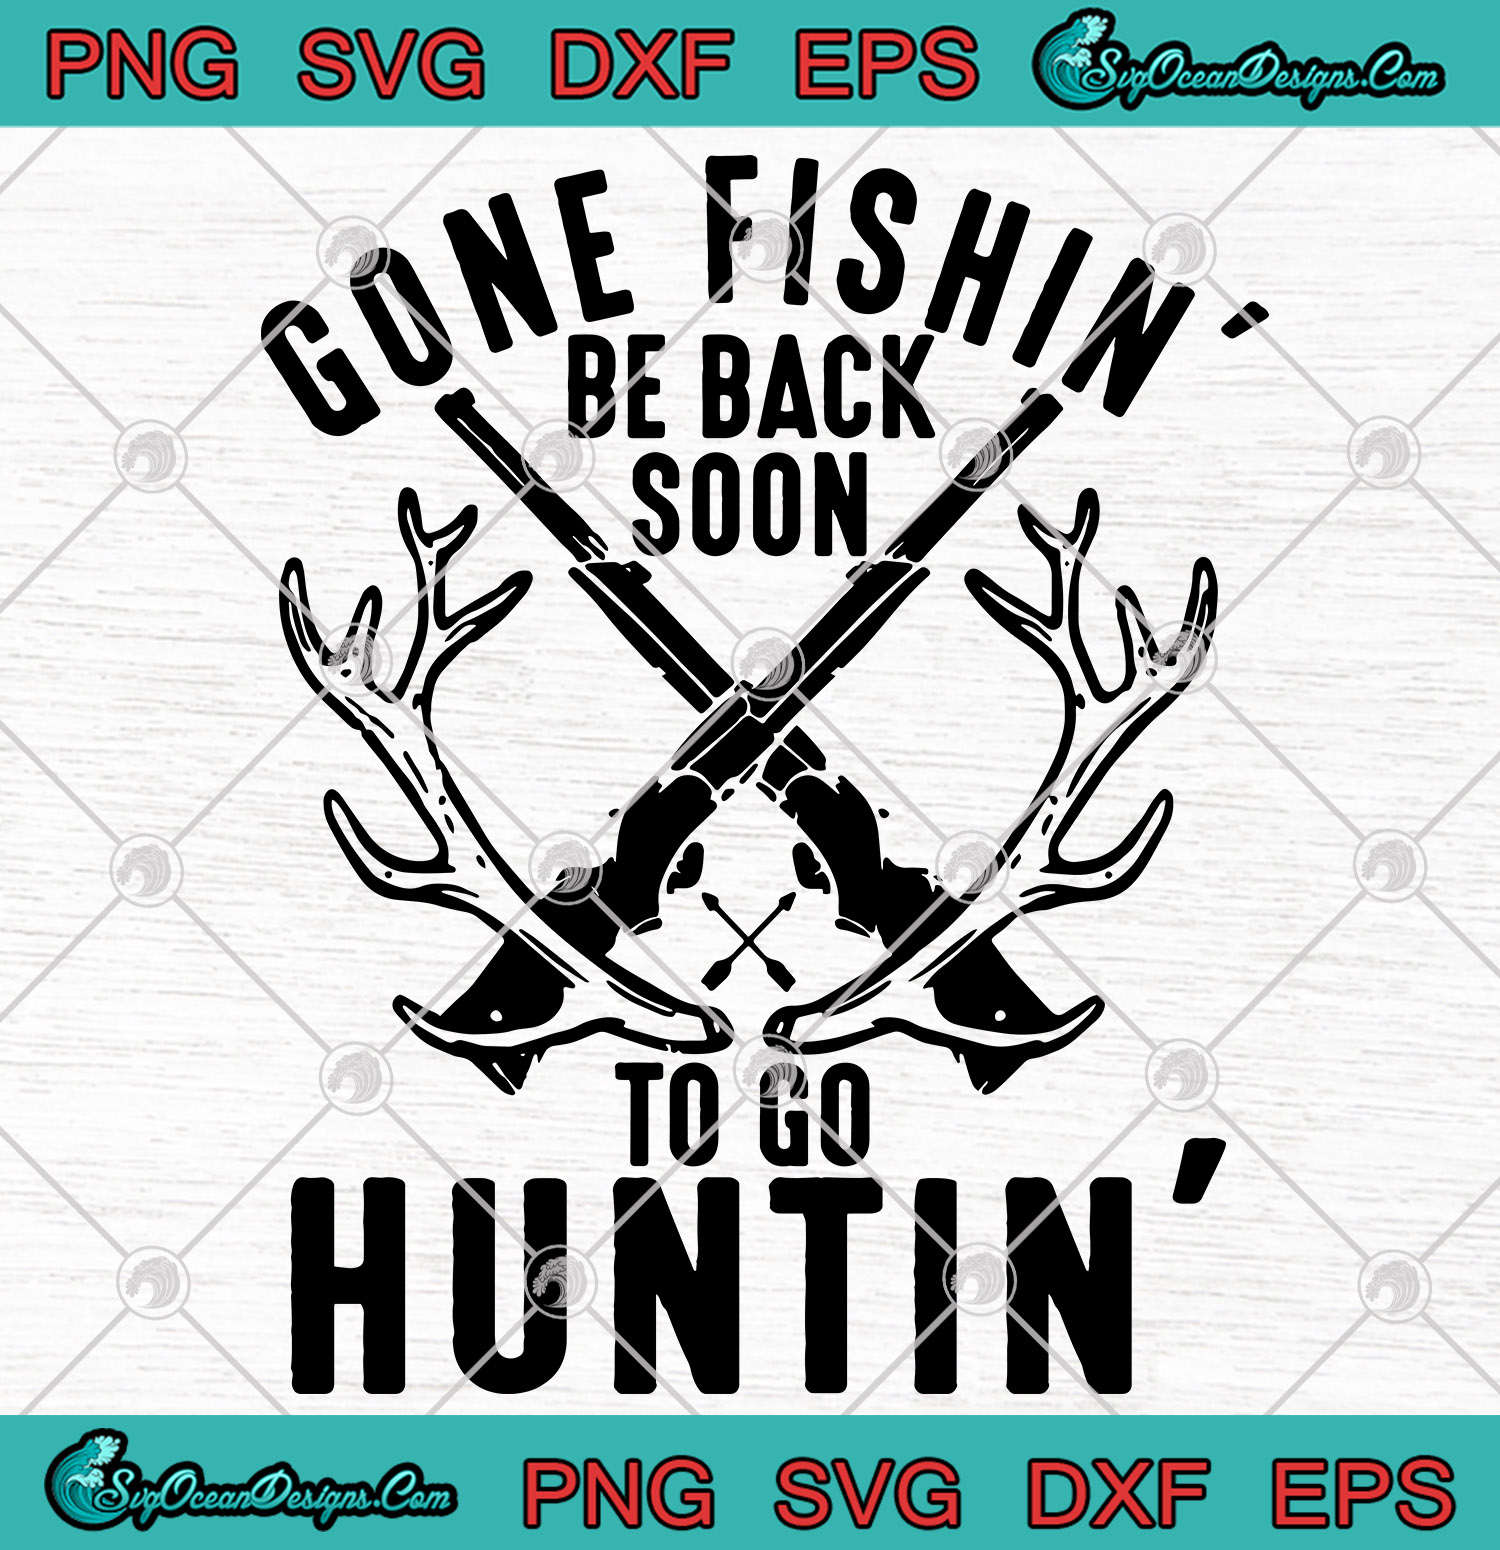 Download Gone Fishing Be Back Soon To Go Hunting Svg Png Eps Dxf Designs For Shirt Svg Png Eps Dxf Cricut Silhouette Designs Digital Download